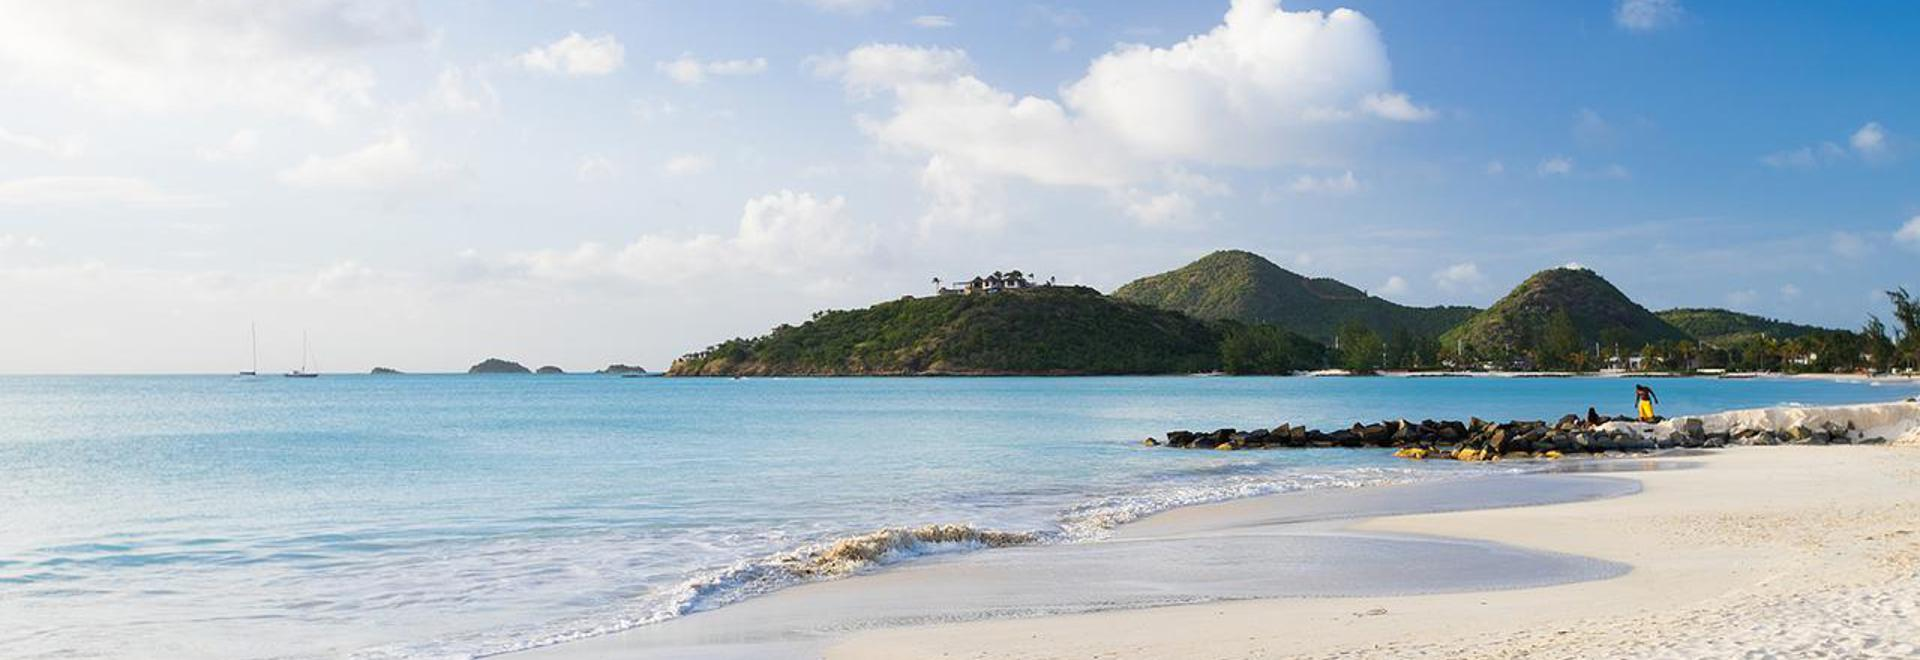 A LEISURELY DAY IN ANTIGUA